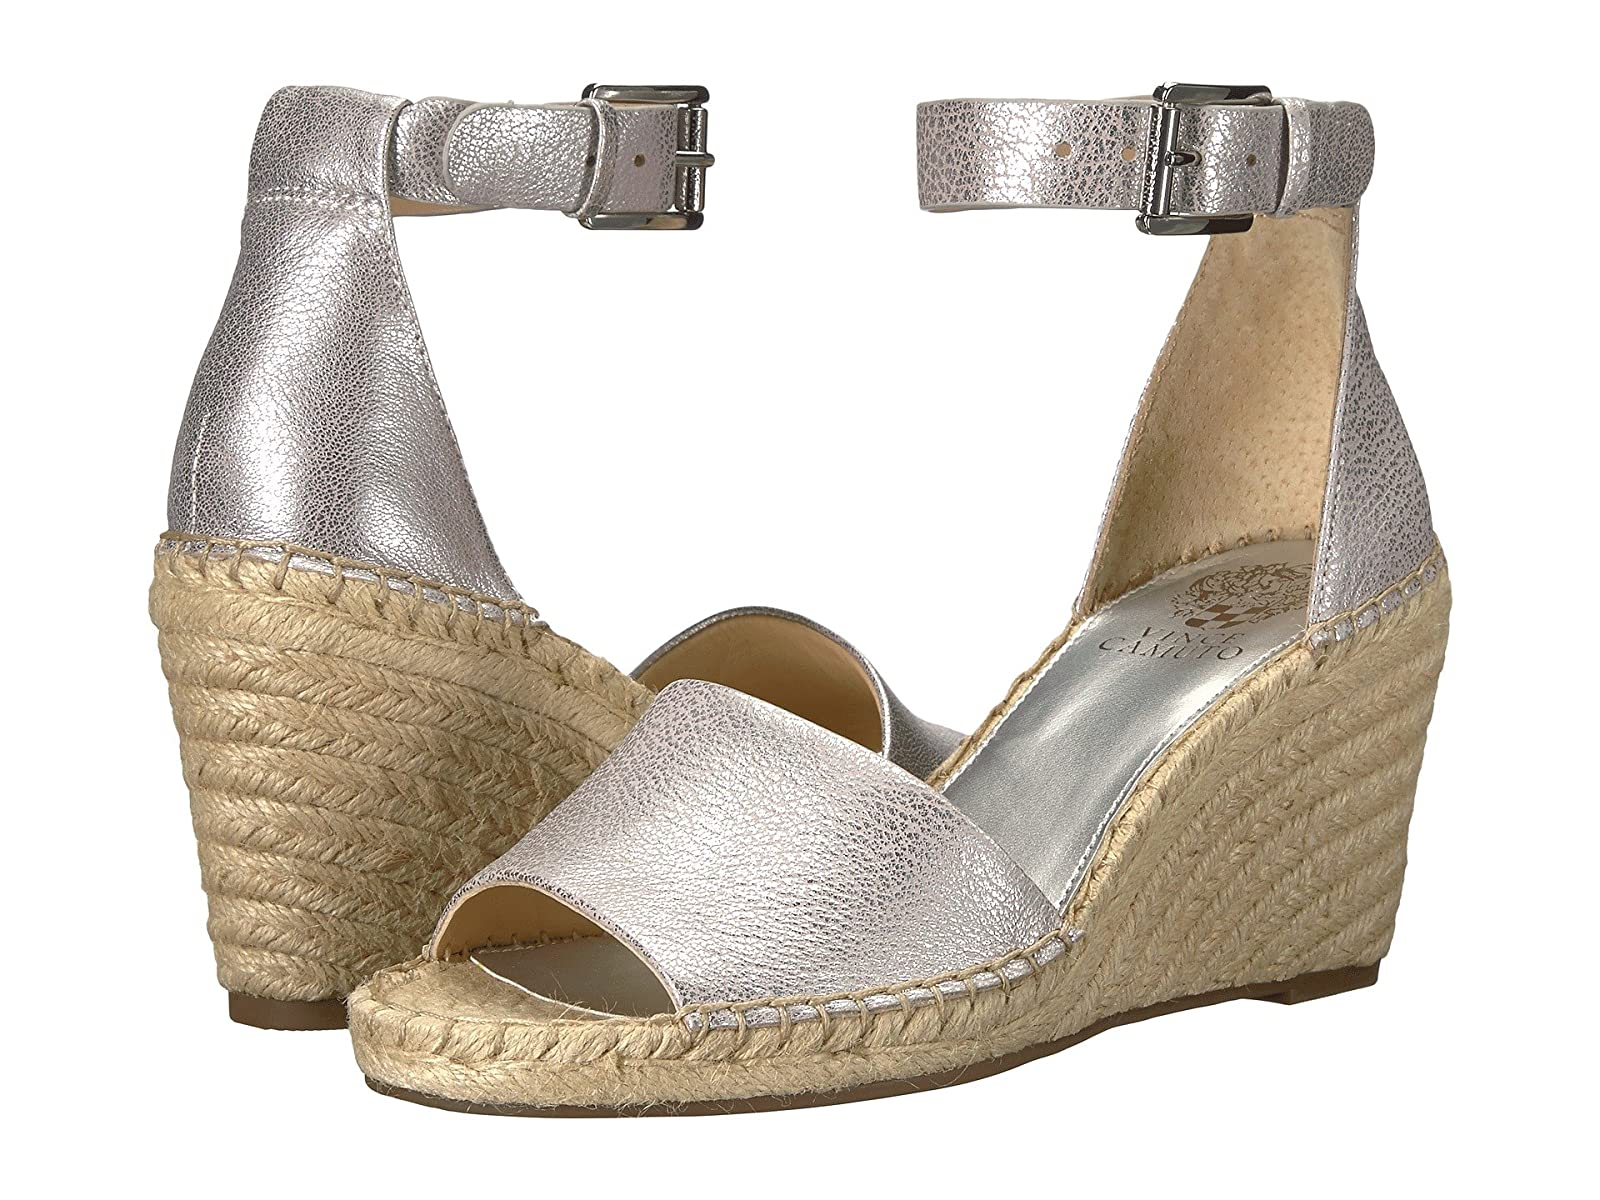 Vince Camuto LeeraCheap and distinctive eye-catching shoes